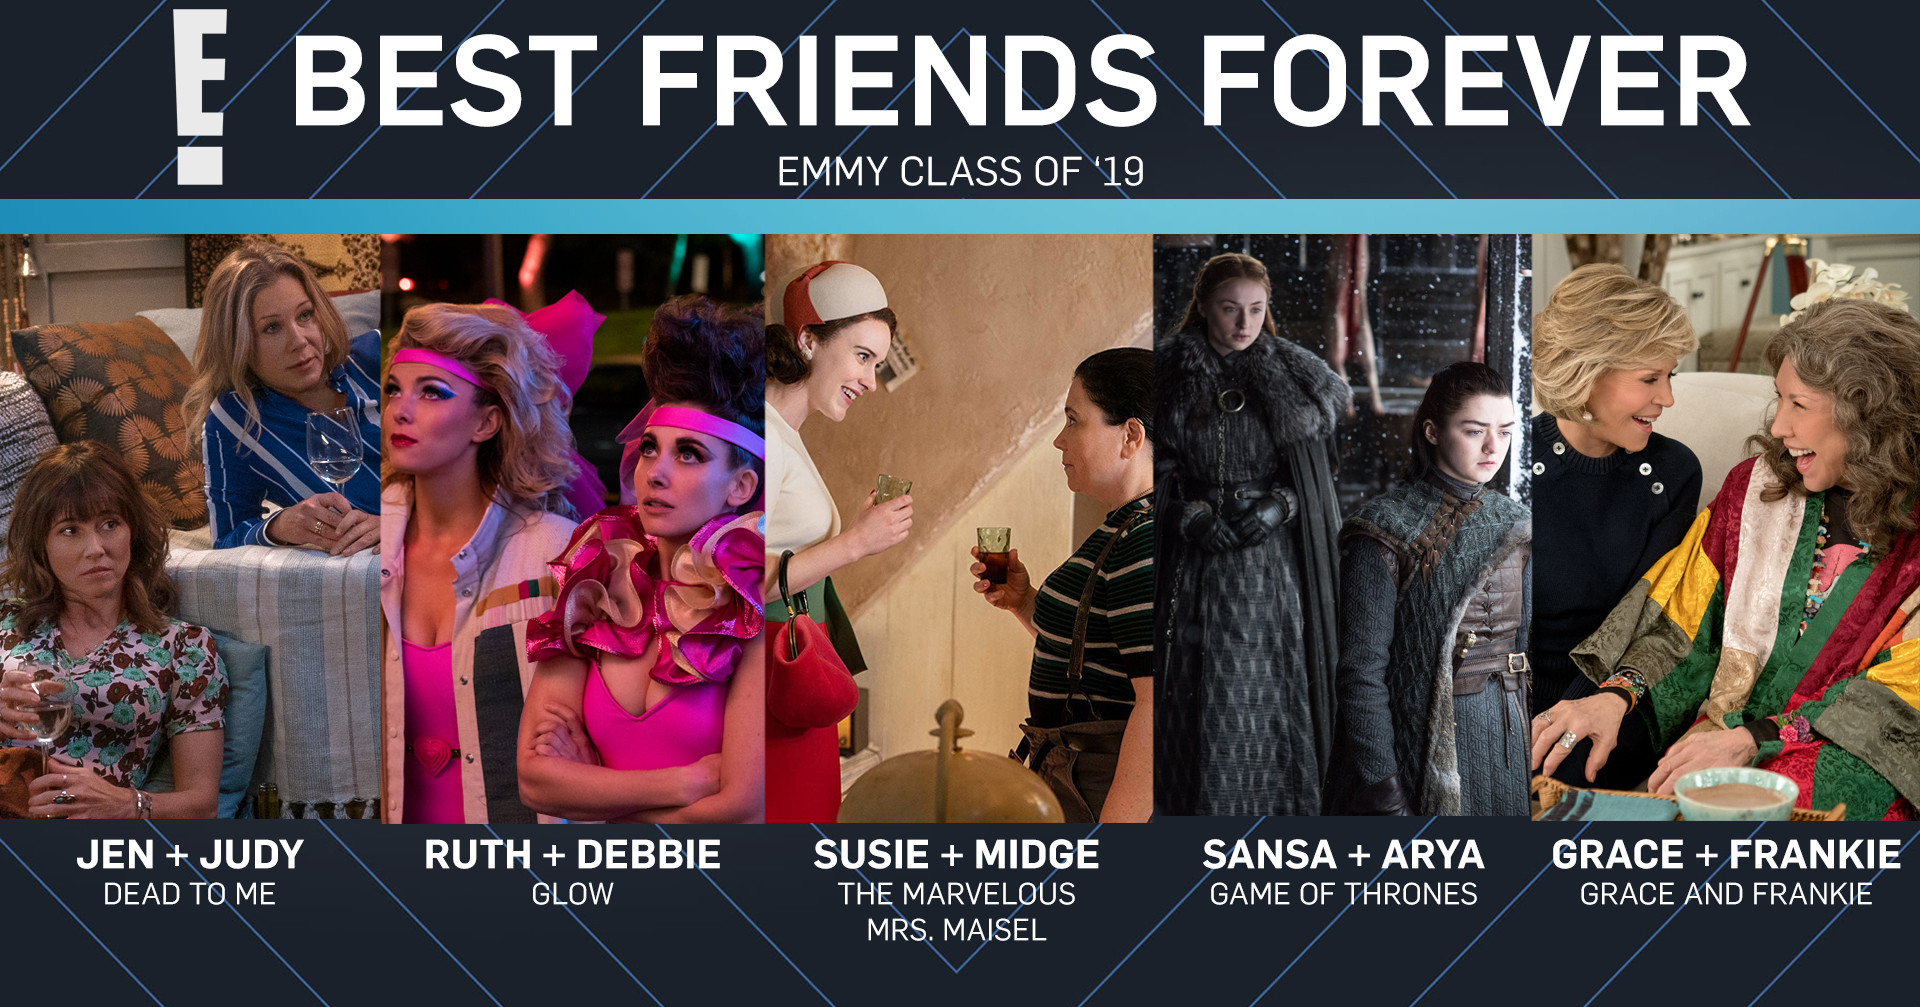 Emmy Class of 2019, Best Friends Forever